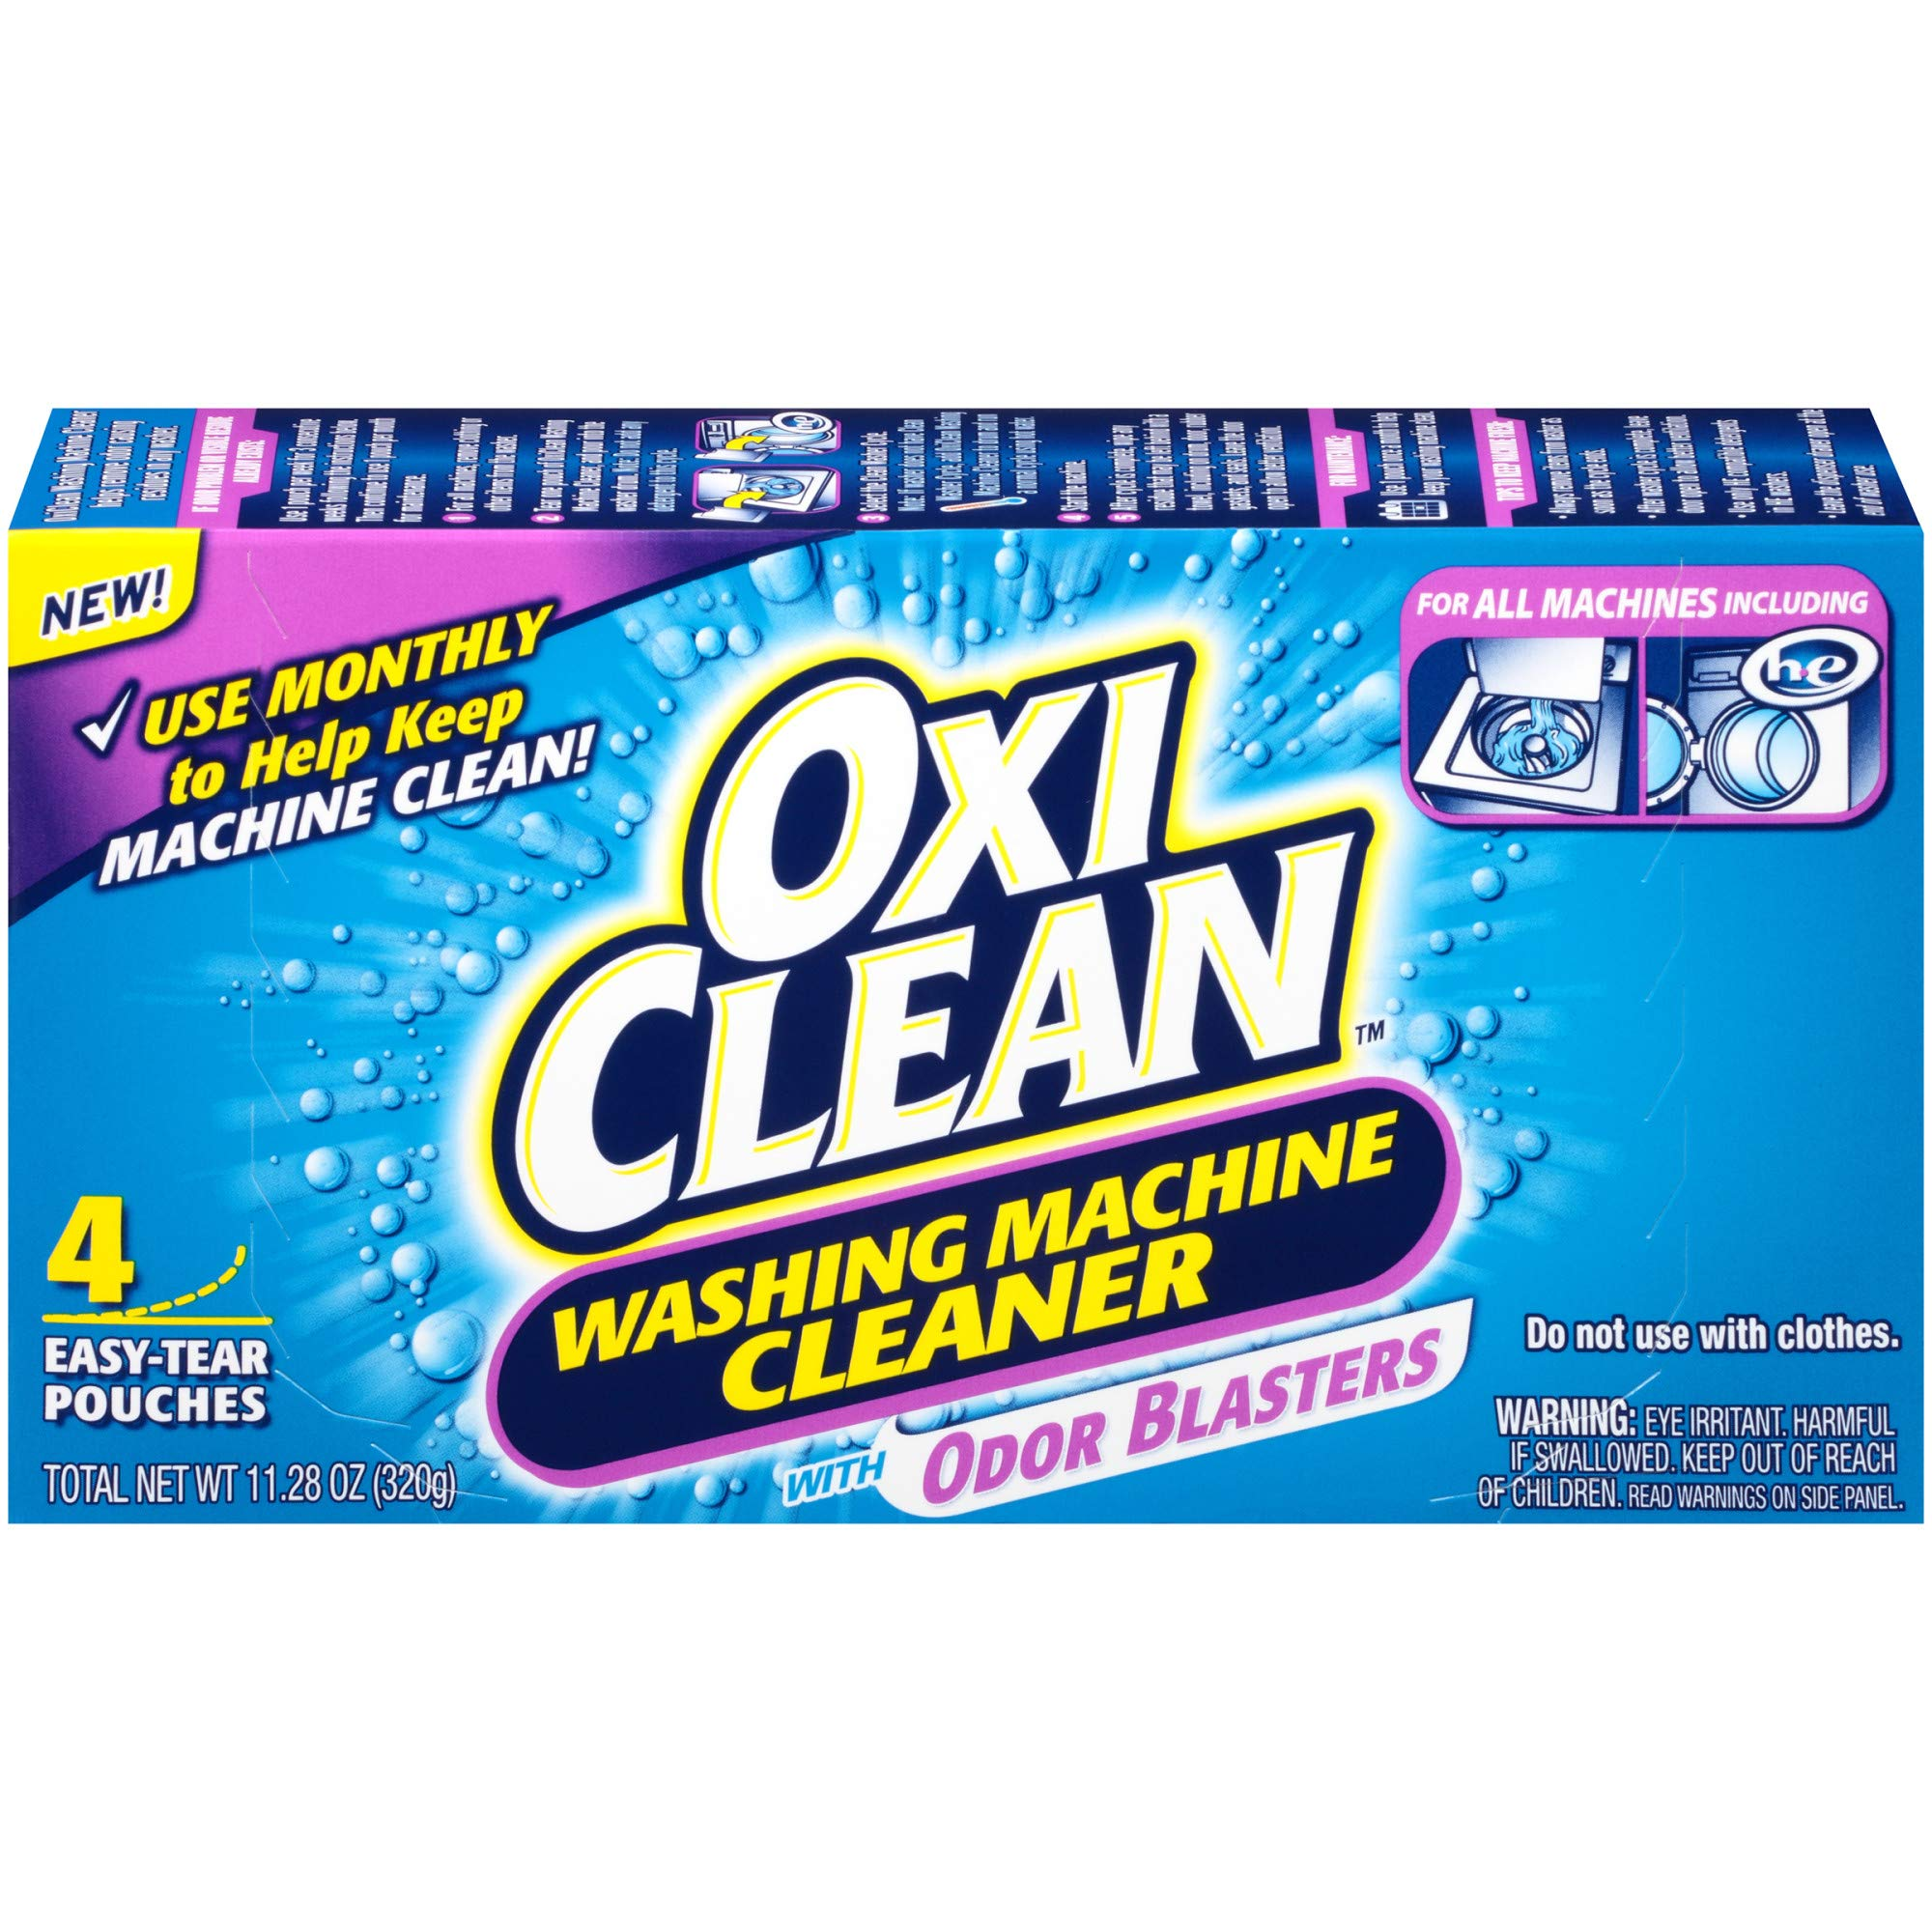 OxiClean Washing Machine Cleaner with Odor Blasters, 4 Count product image